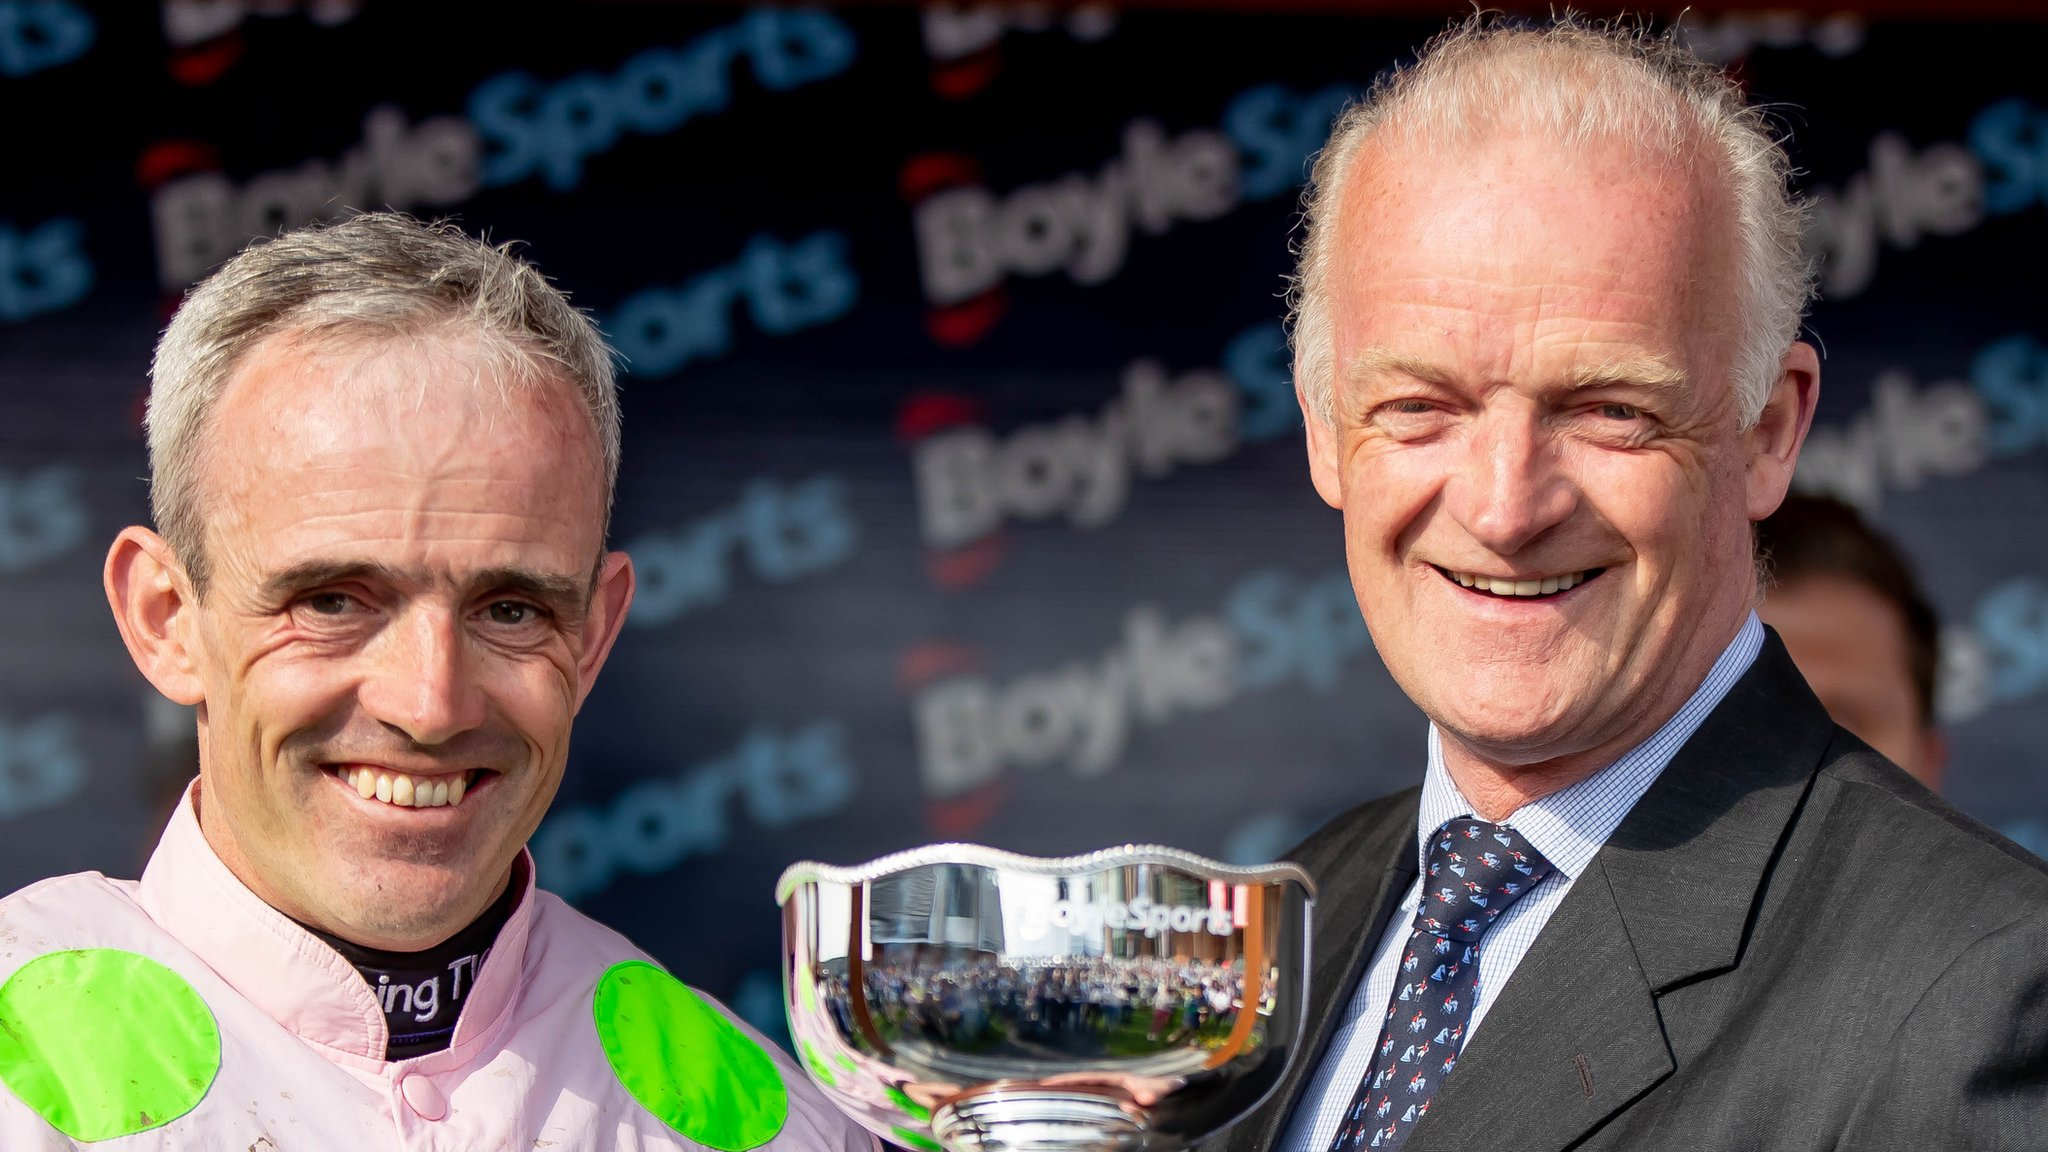 'A tremendous result' - Mullins 1-2-3 as he wins first Irish National with Burrows Saint